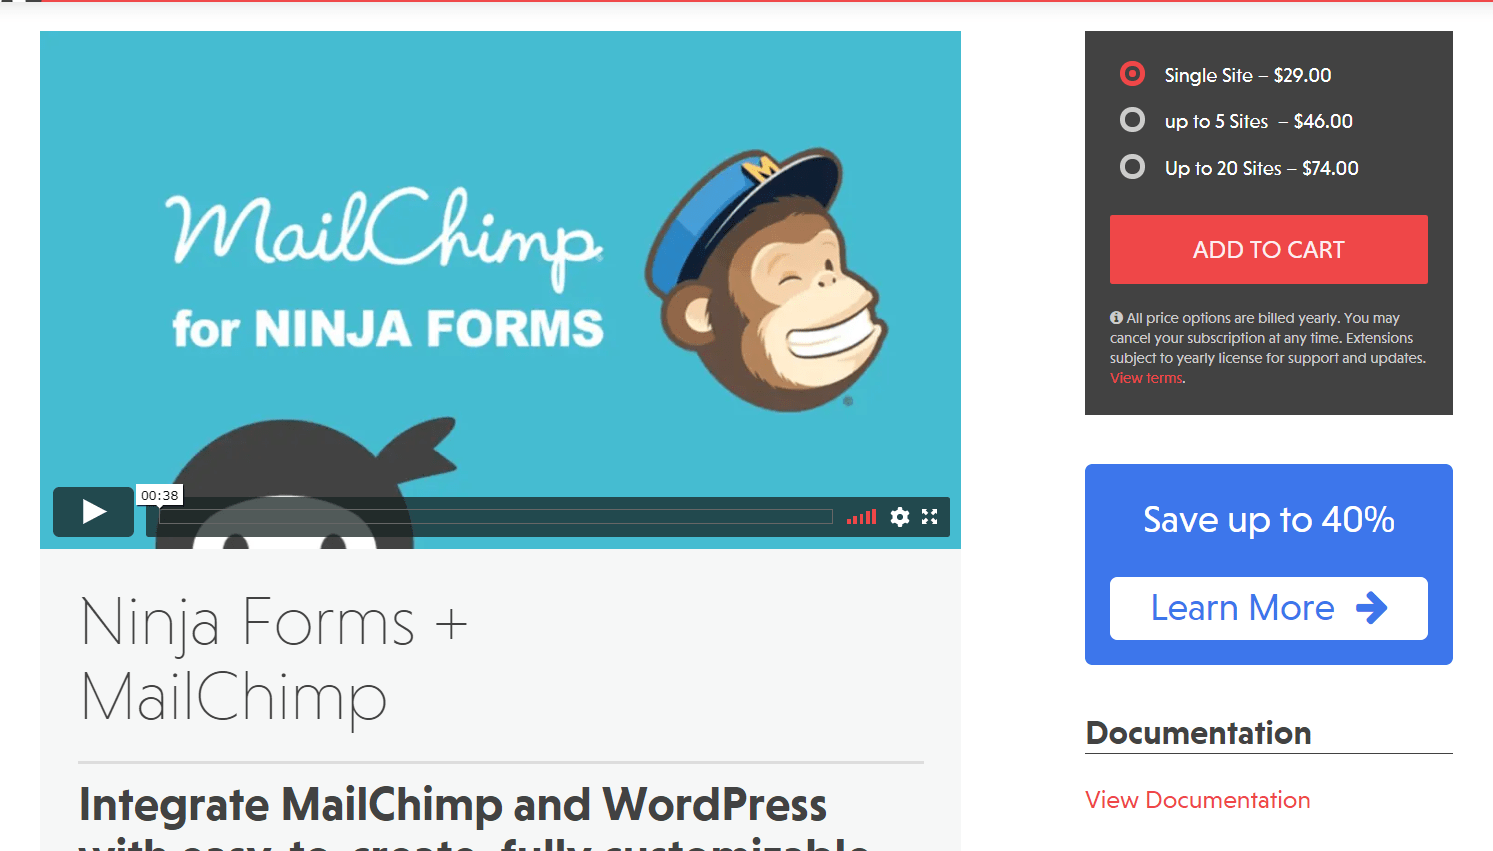 integrating mailchimp with Ninja Forms